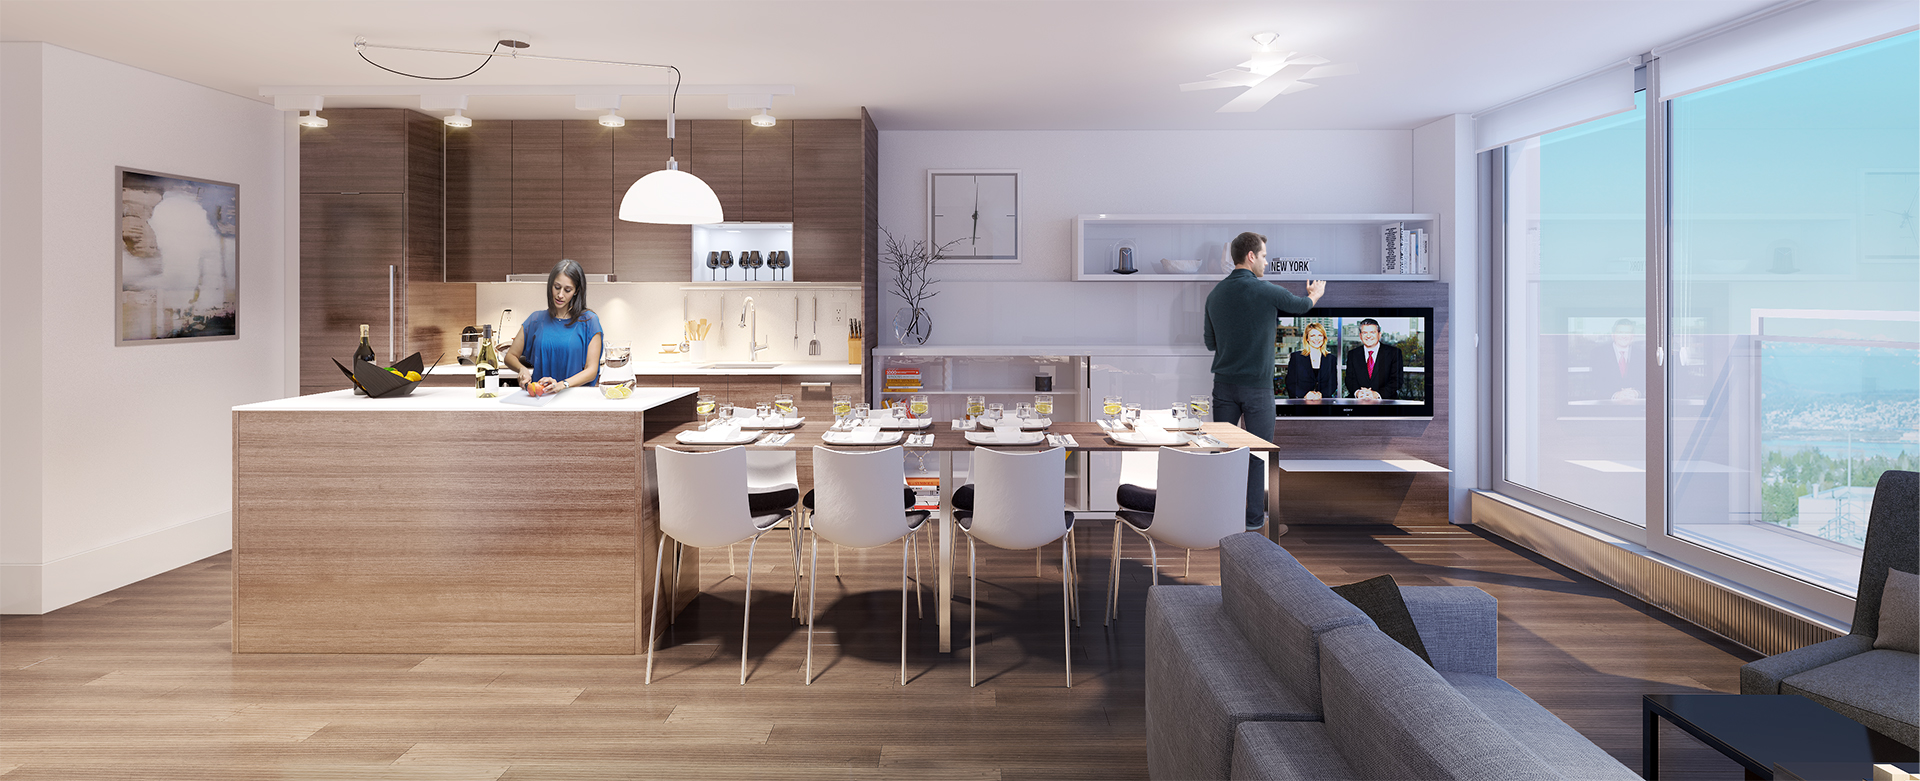 Making The Most Out Of Small Apartments Using  : 6 Kitchen diner from www.home-designing.com size 1920 x 781 jpeg 920kB